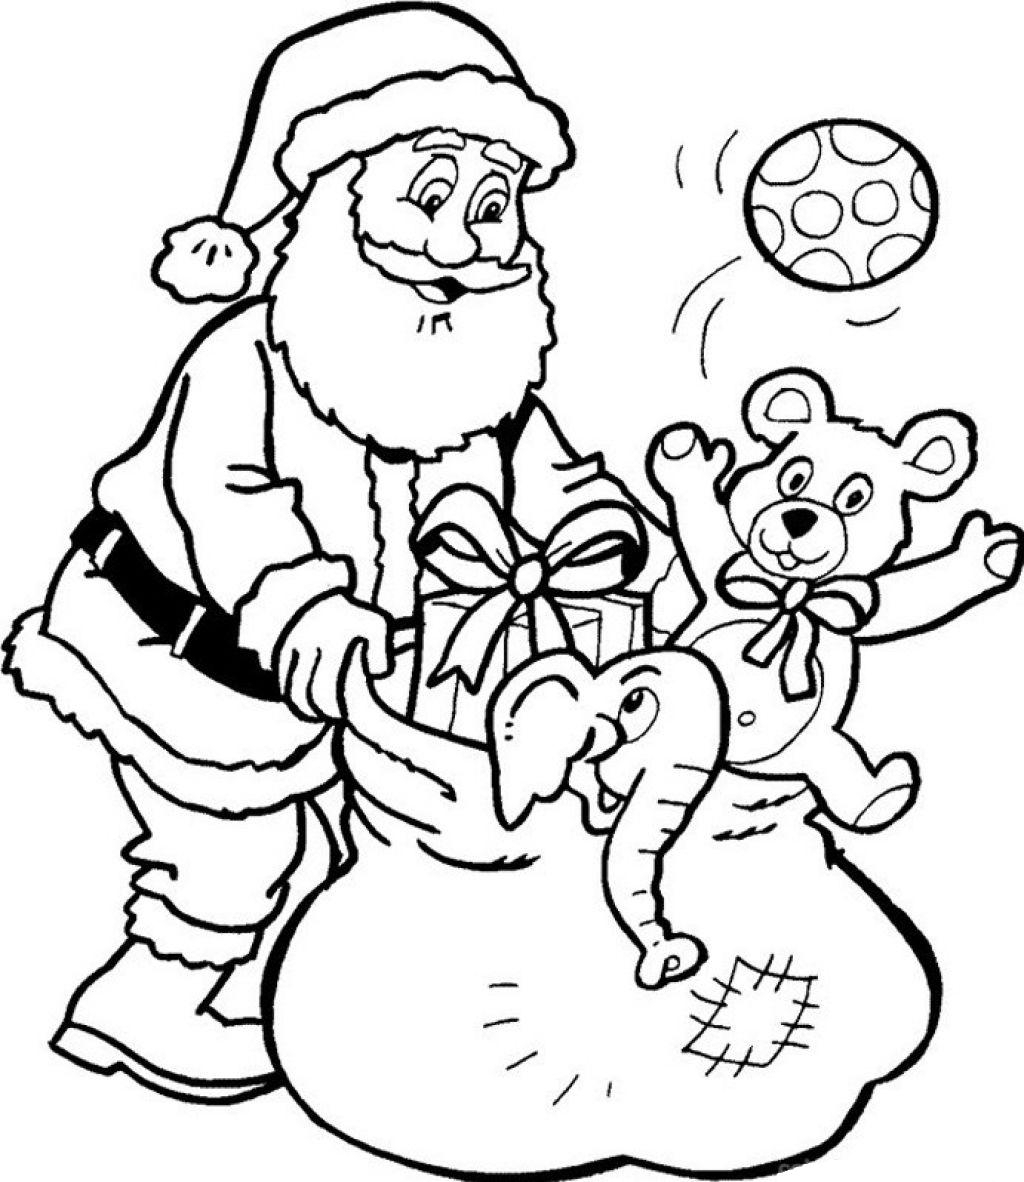 Santa Claus Coloring Pages With Awesome Cartoon Design Printable